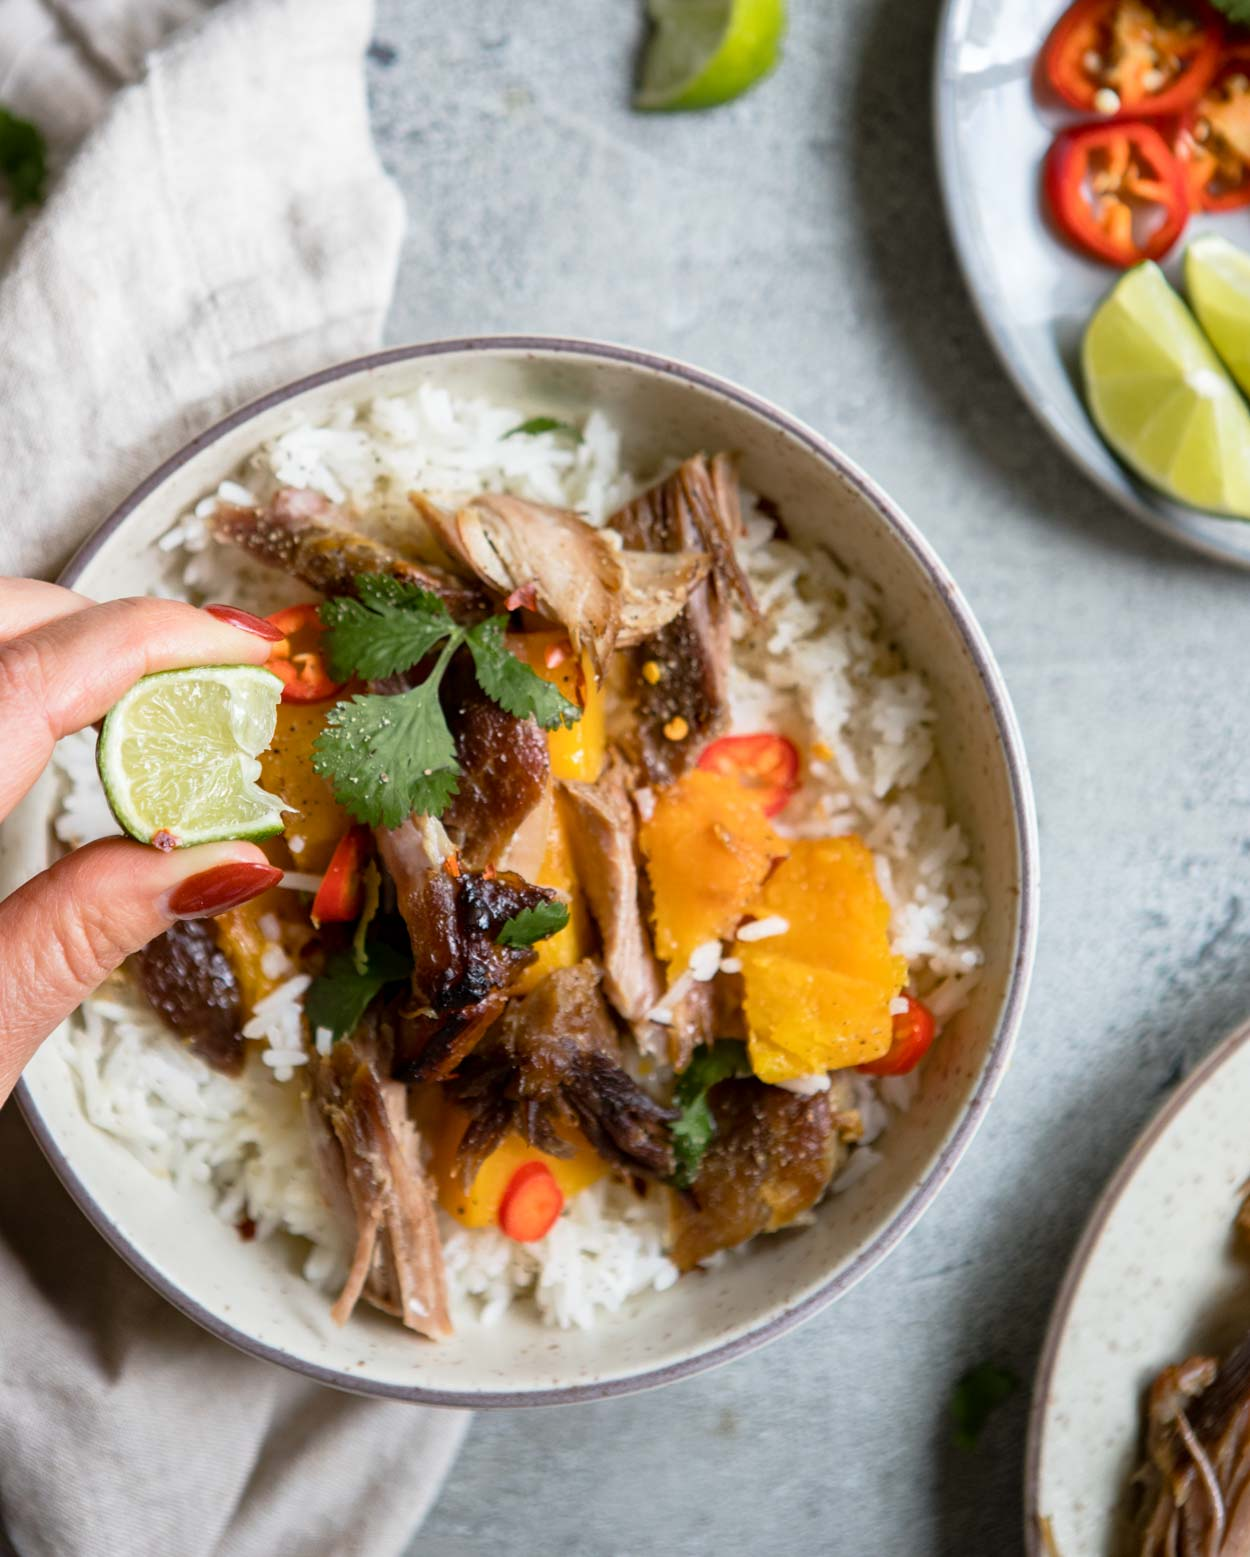 Asian Flavored Braised Pork